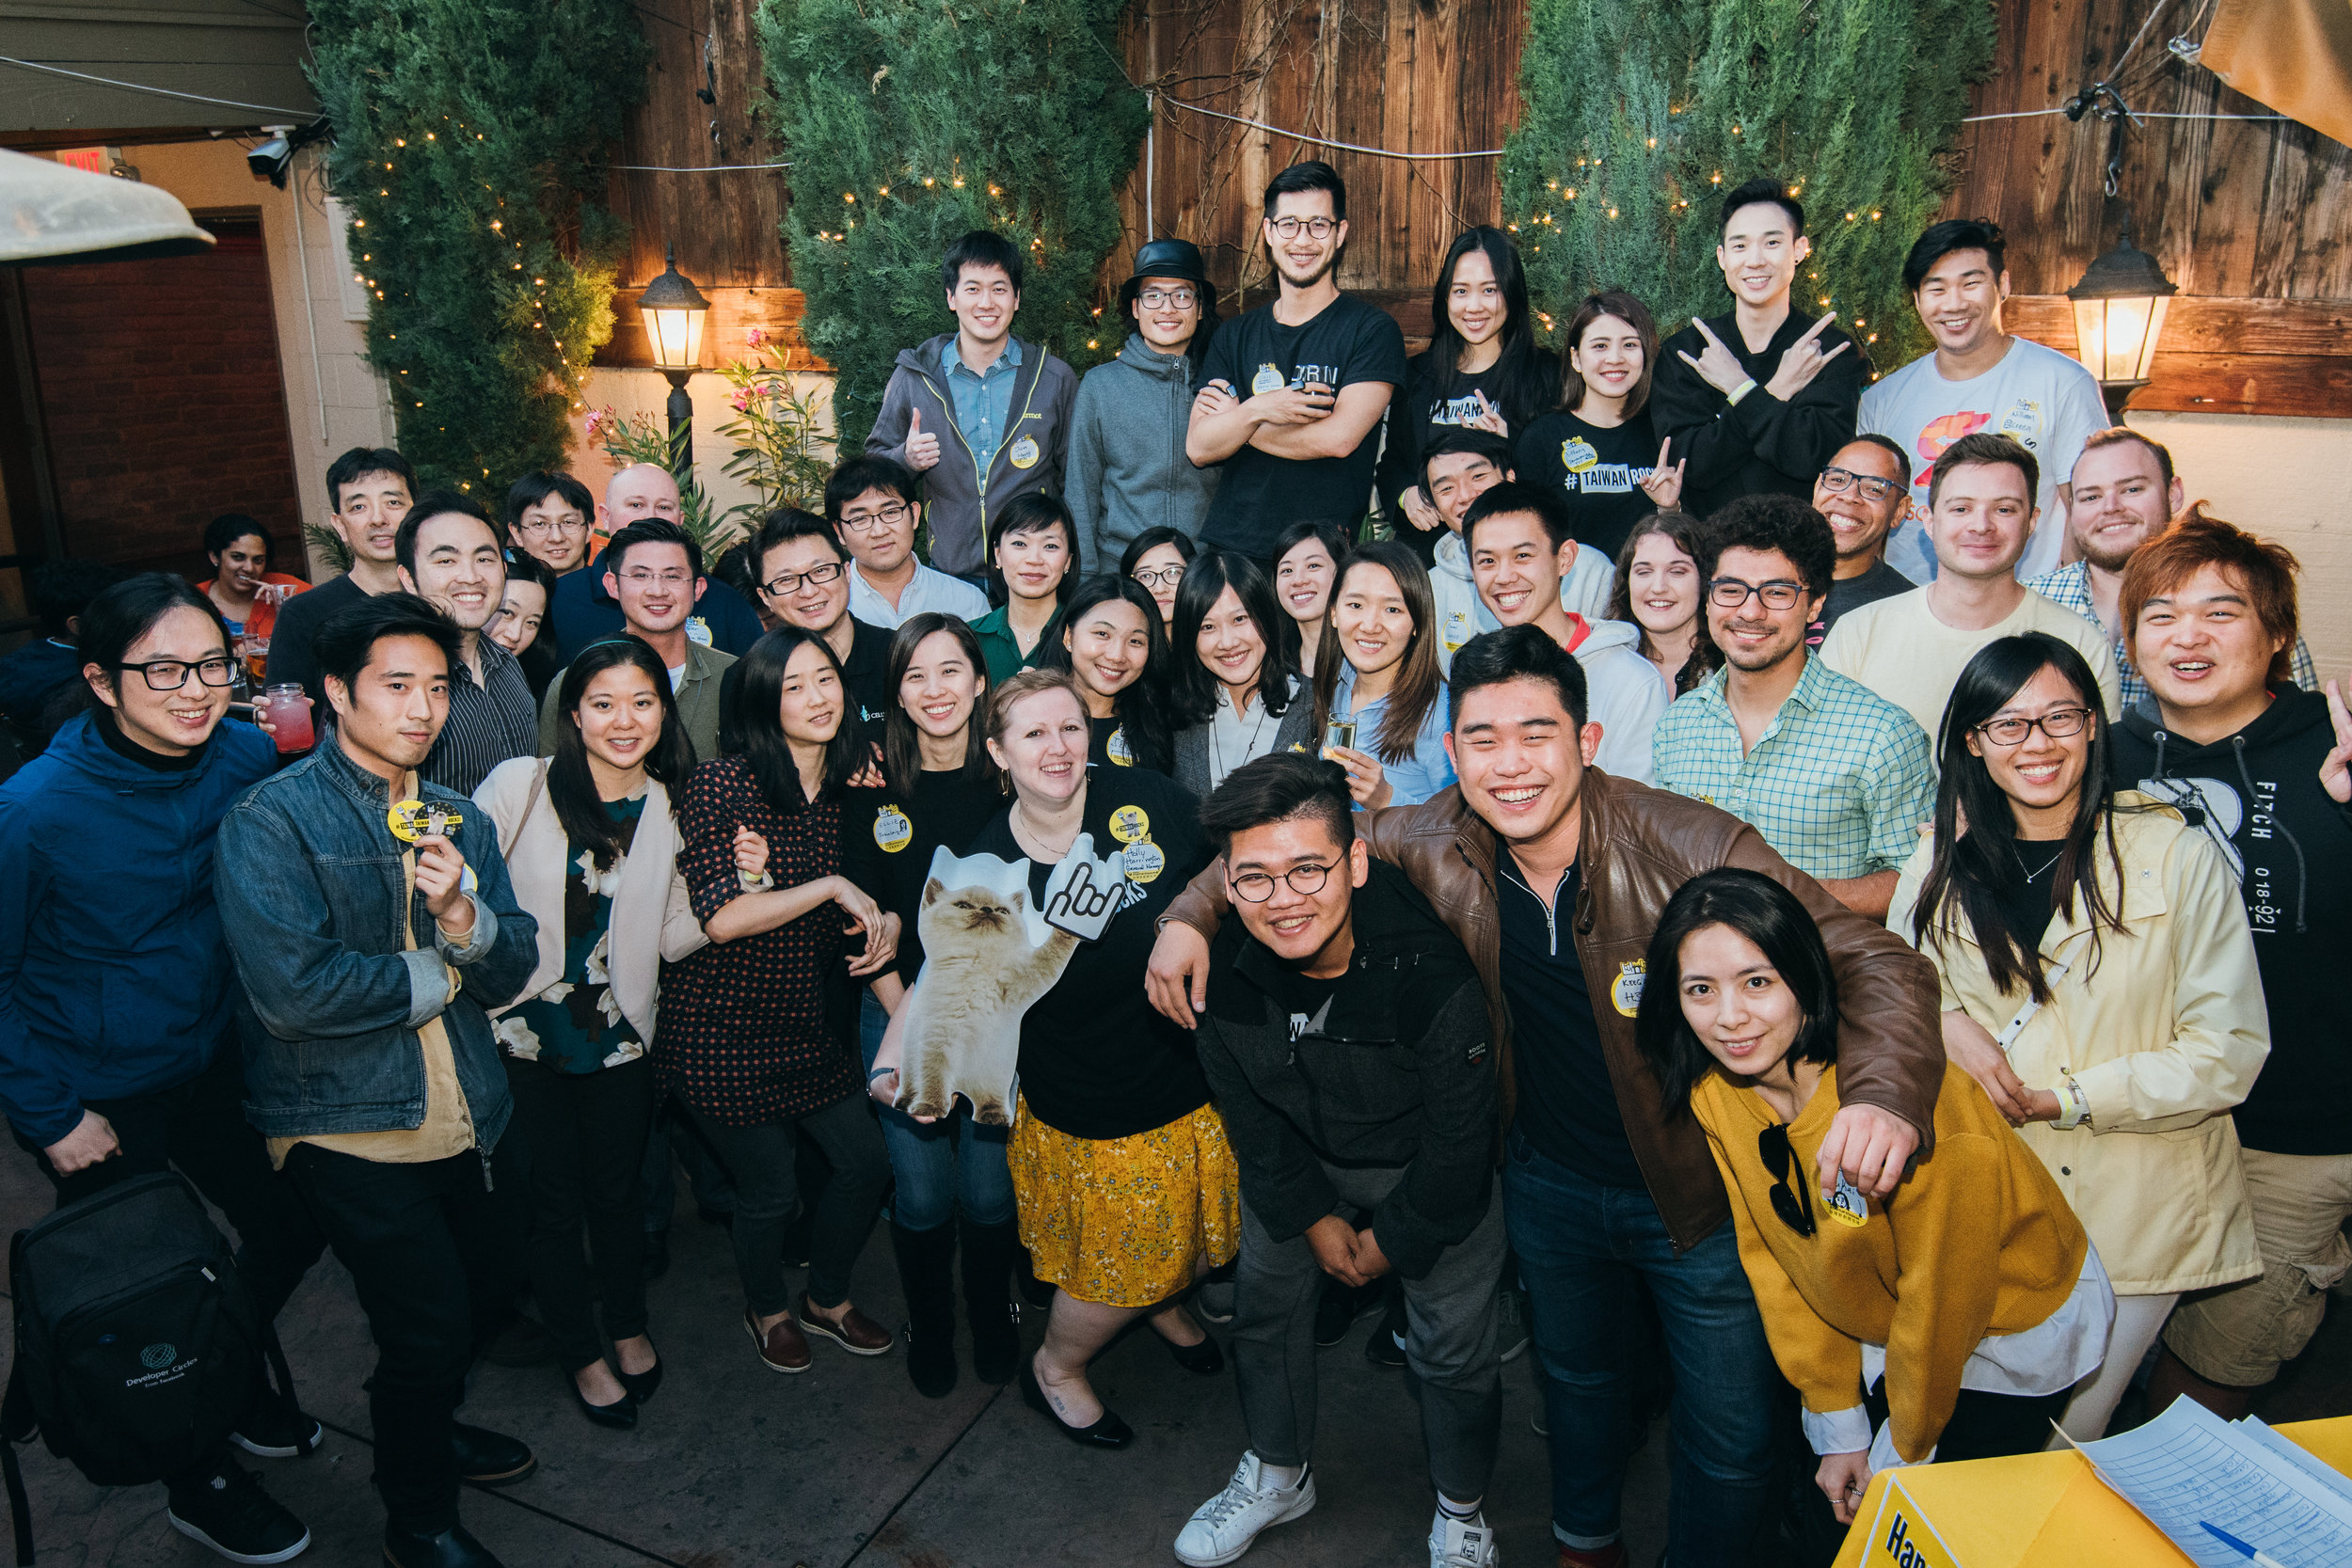 2018 May, TSS hosted Investor Private Talk and Happy Hour session in Silicon Valley in order to understand more about Silicon Valley culture